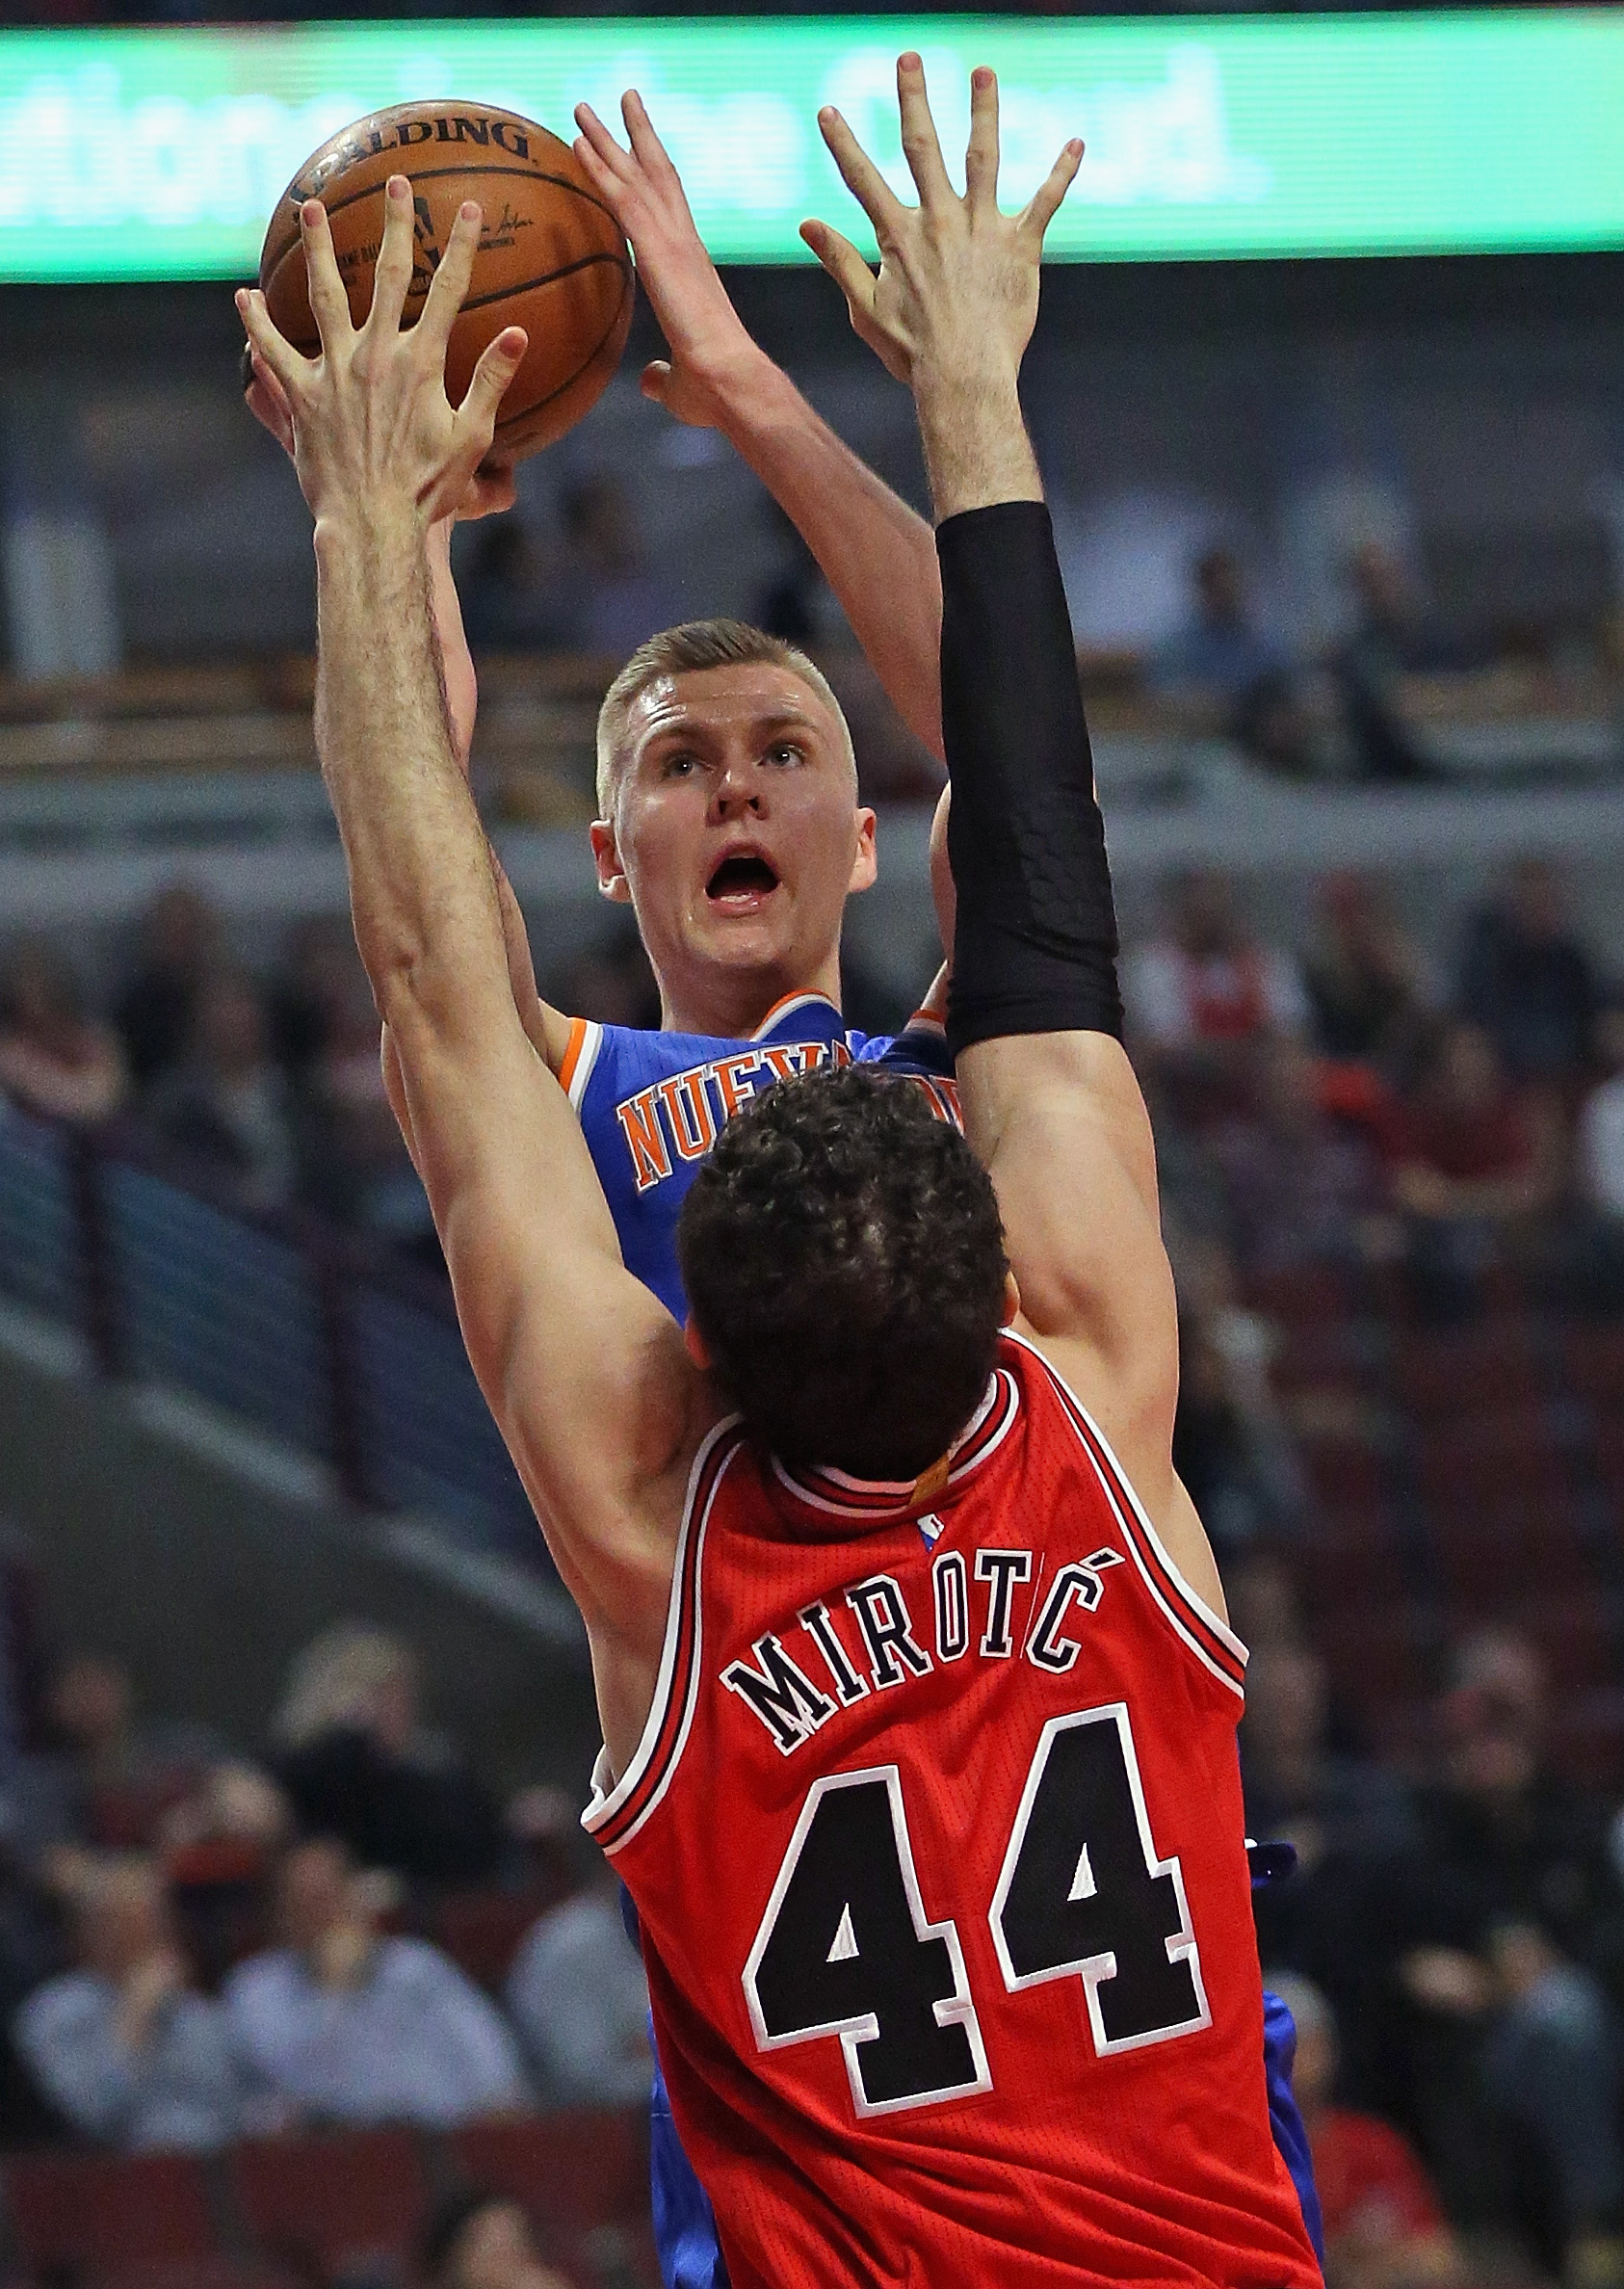 CHICAGO, IL - MARCH 23: Kristaps Porzingis #6 of the New York Knicks shoots over Nikola Mirotic #44 of the Chicago Bulls at the United Center on March 23, 2016 in Chicago, Illinois. (Photo by Jonathan Daniel/Getty Images)